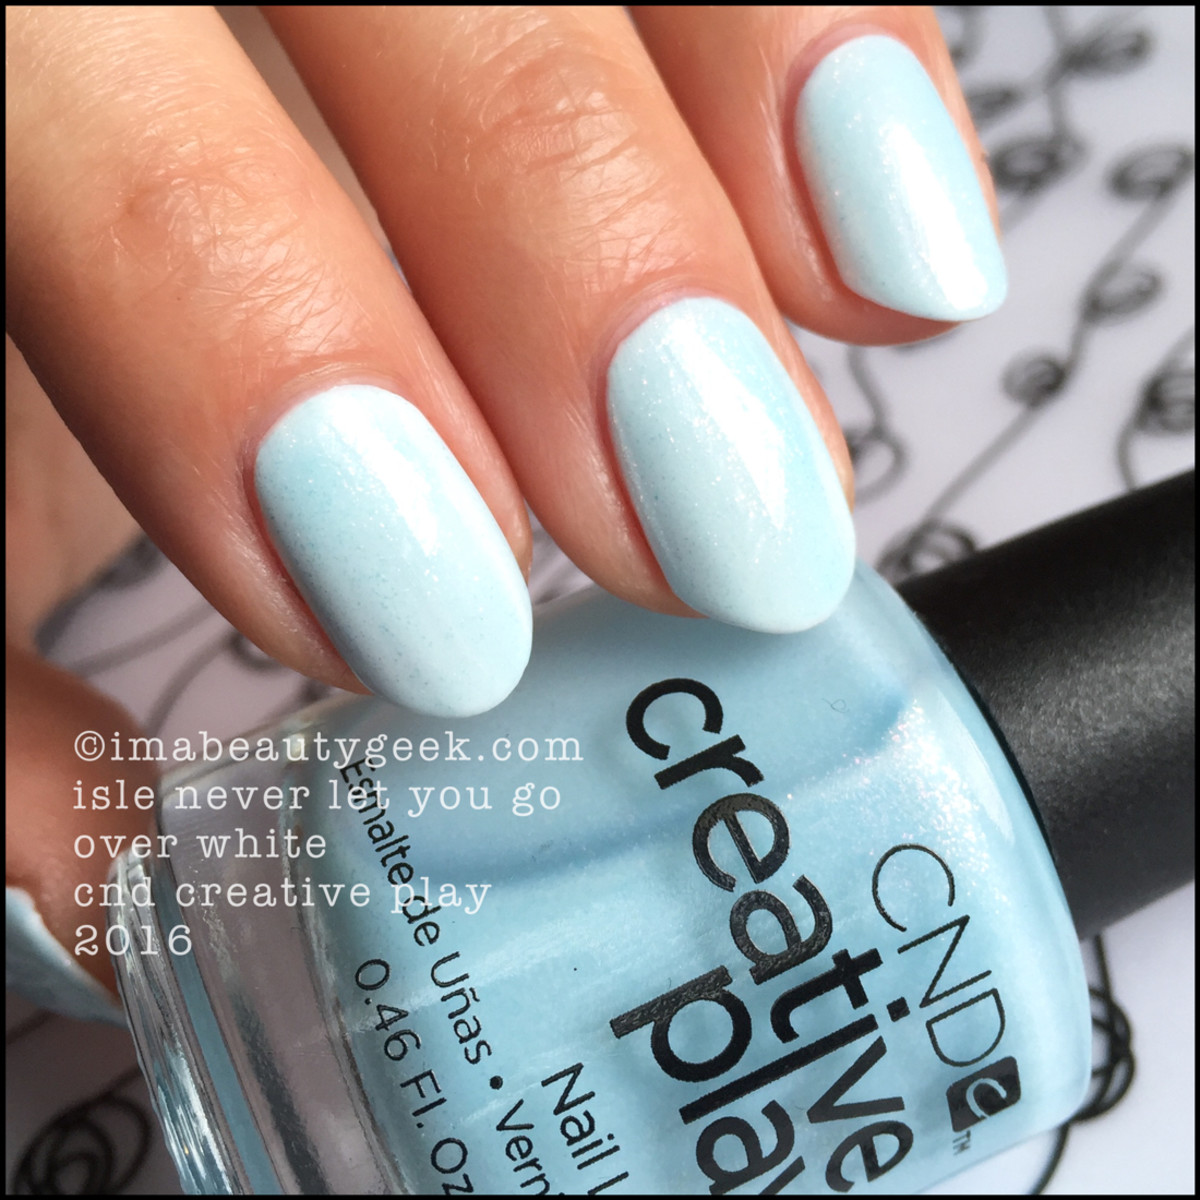 CND Creative Play Isle Never Let You Go_CND Creative Play Nail Polish Swatches 2016